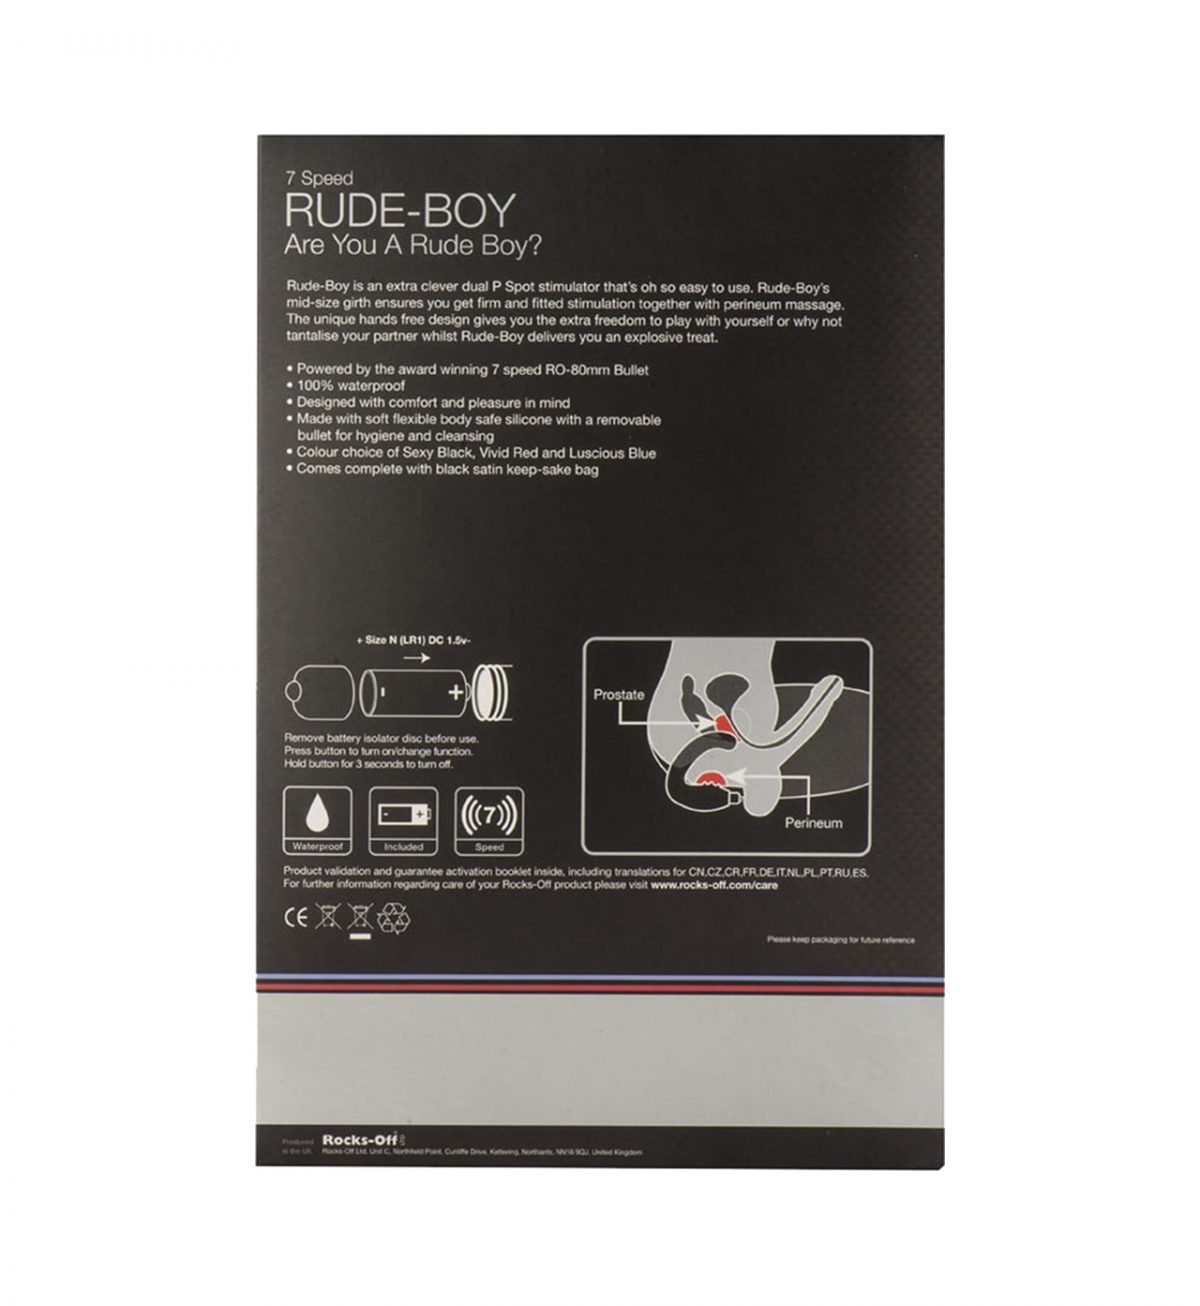 Rude-Boy 7 Speed - Veldesignet vibratorplugg - Rocks-Off